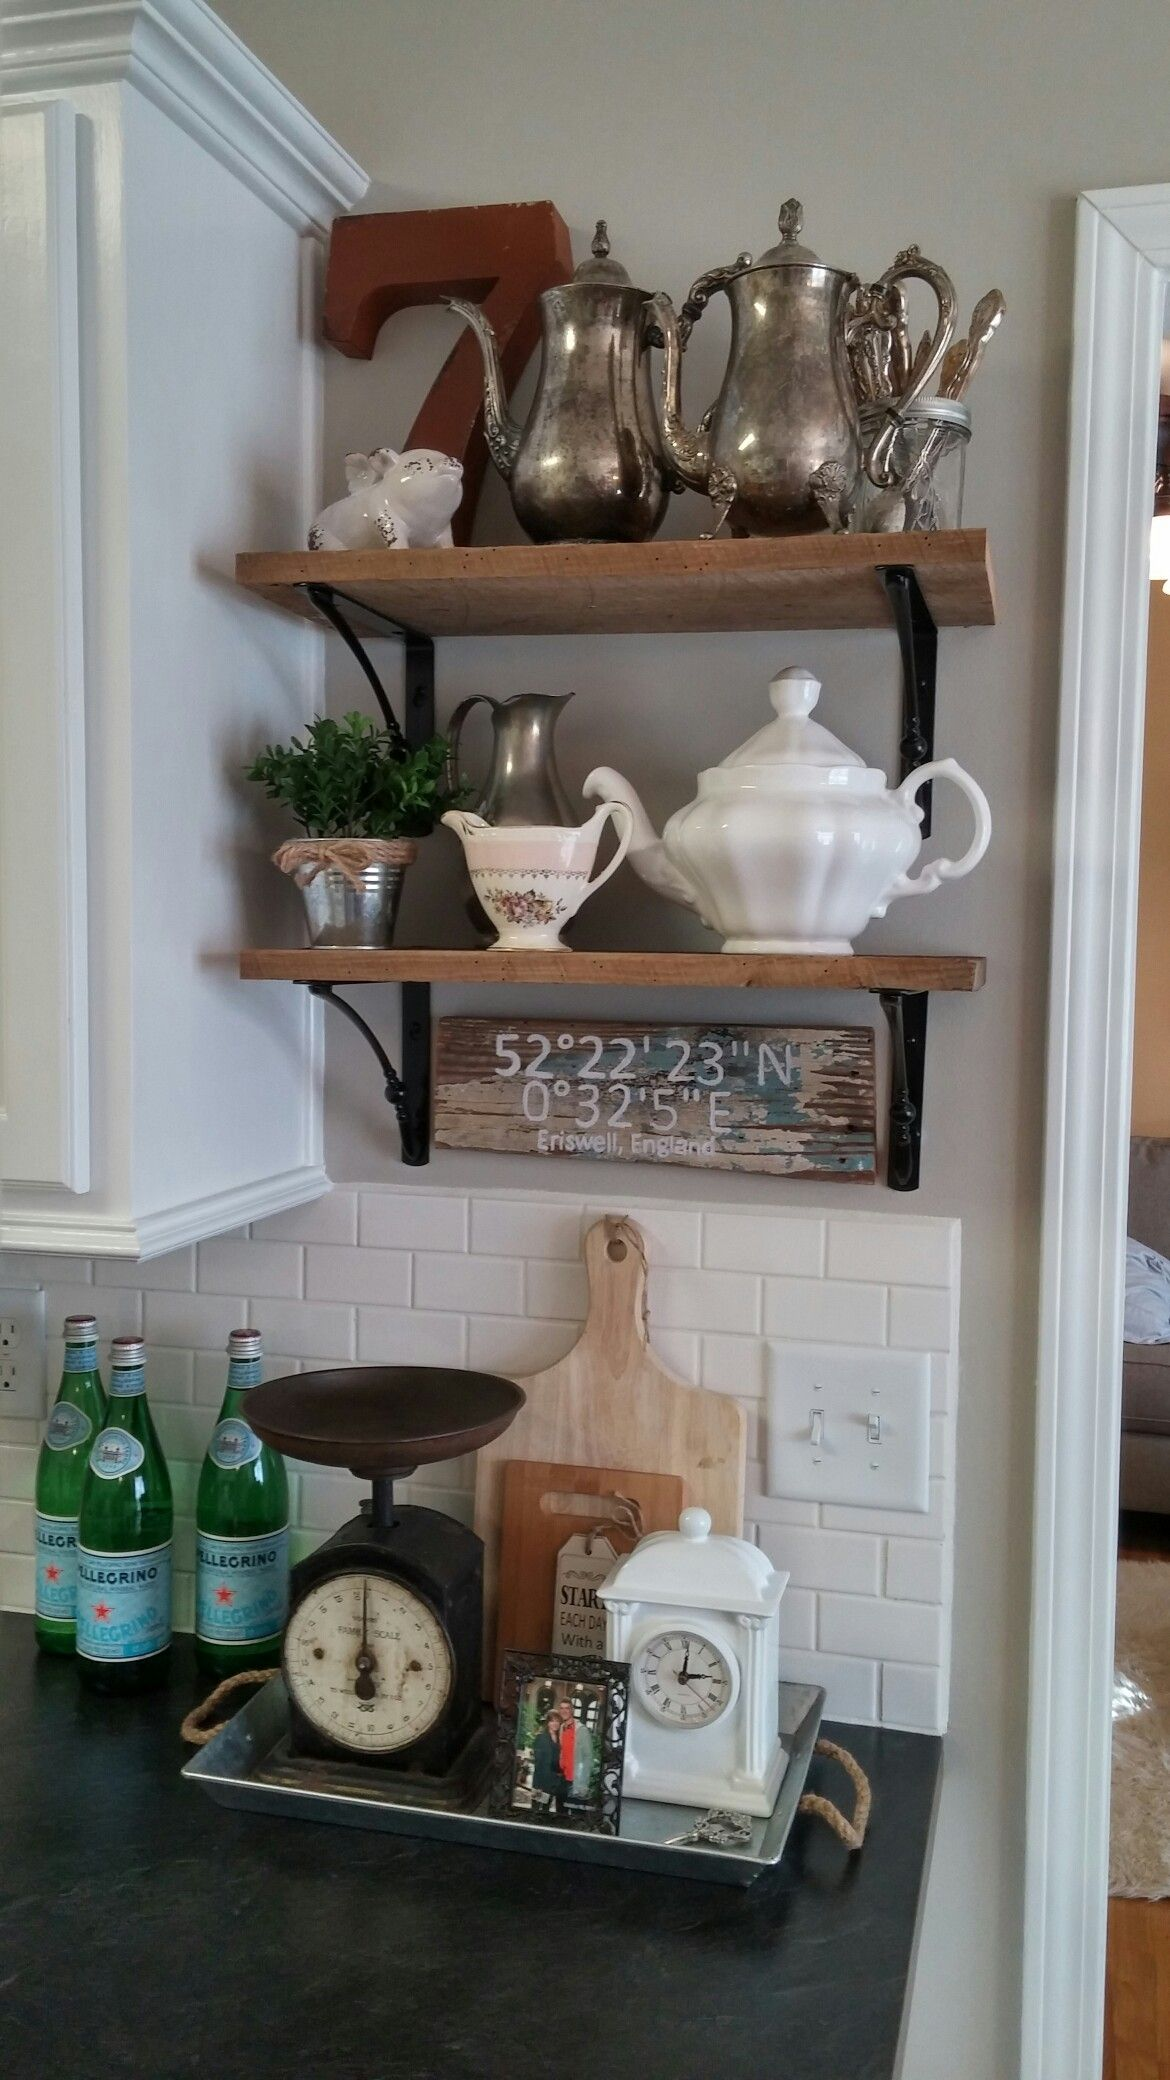 My Husband Helped Me Make This Open Shelving From Reclaimed